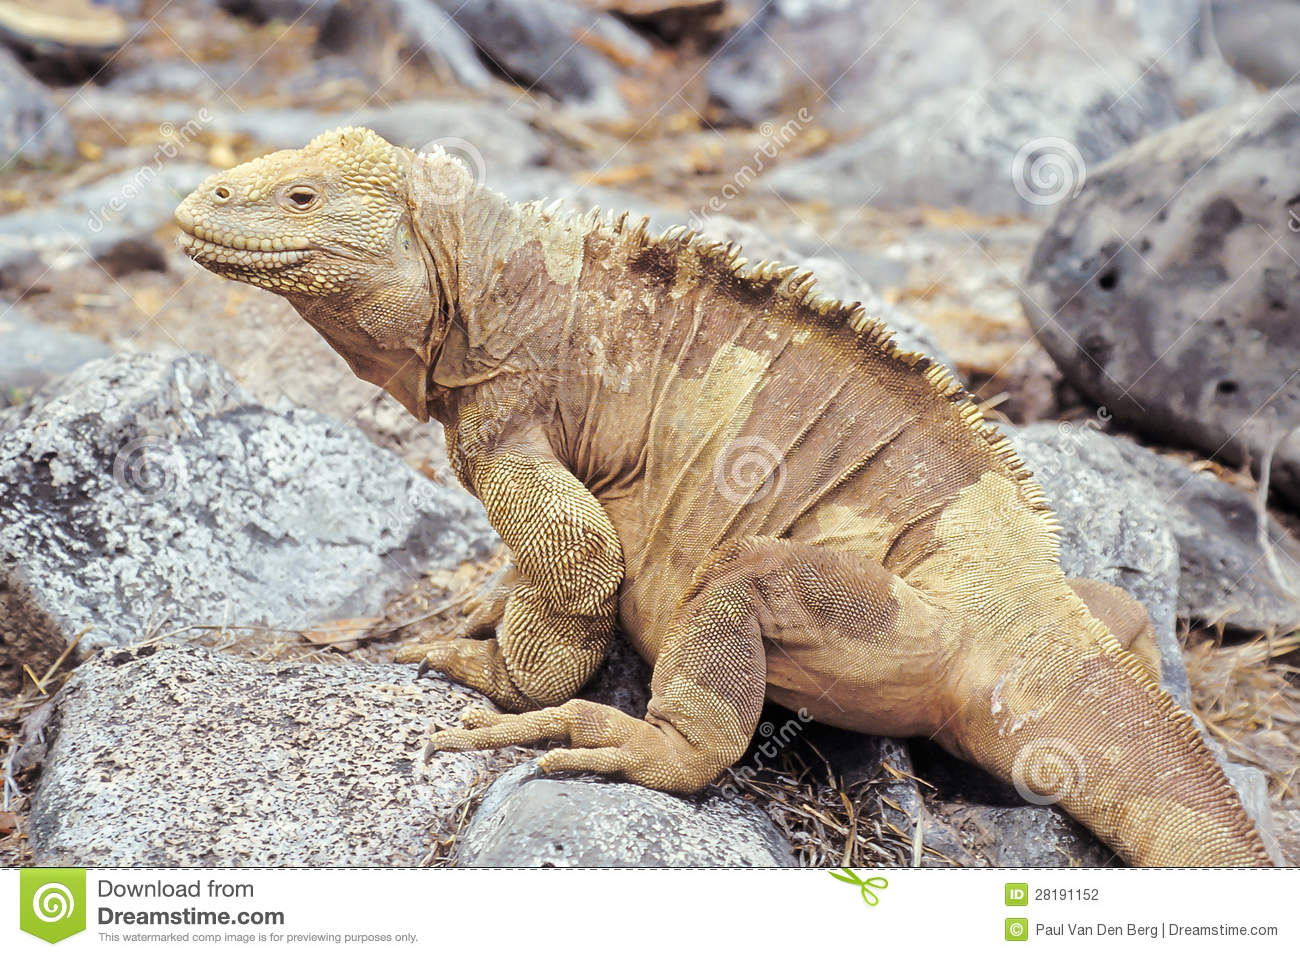 Galapagos Land Iguana Pics, Animal Collection